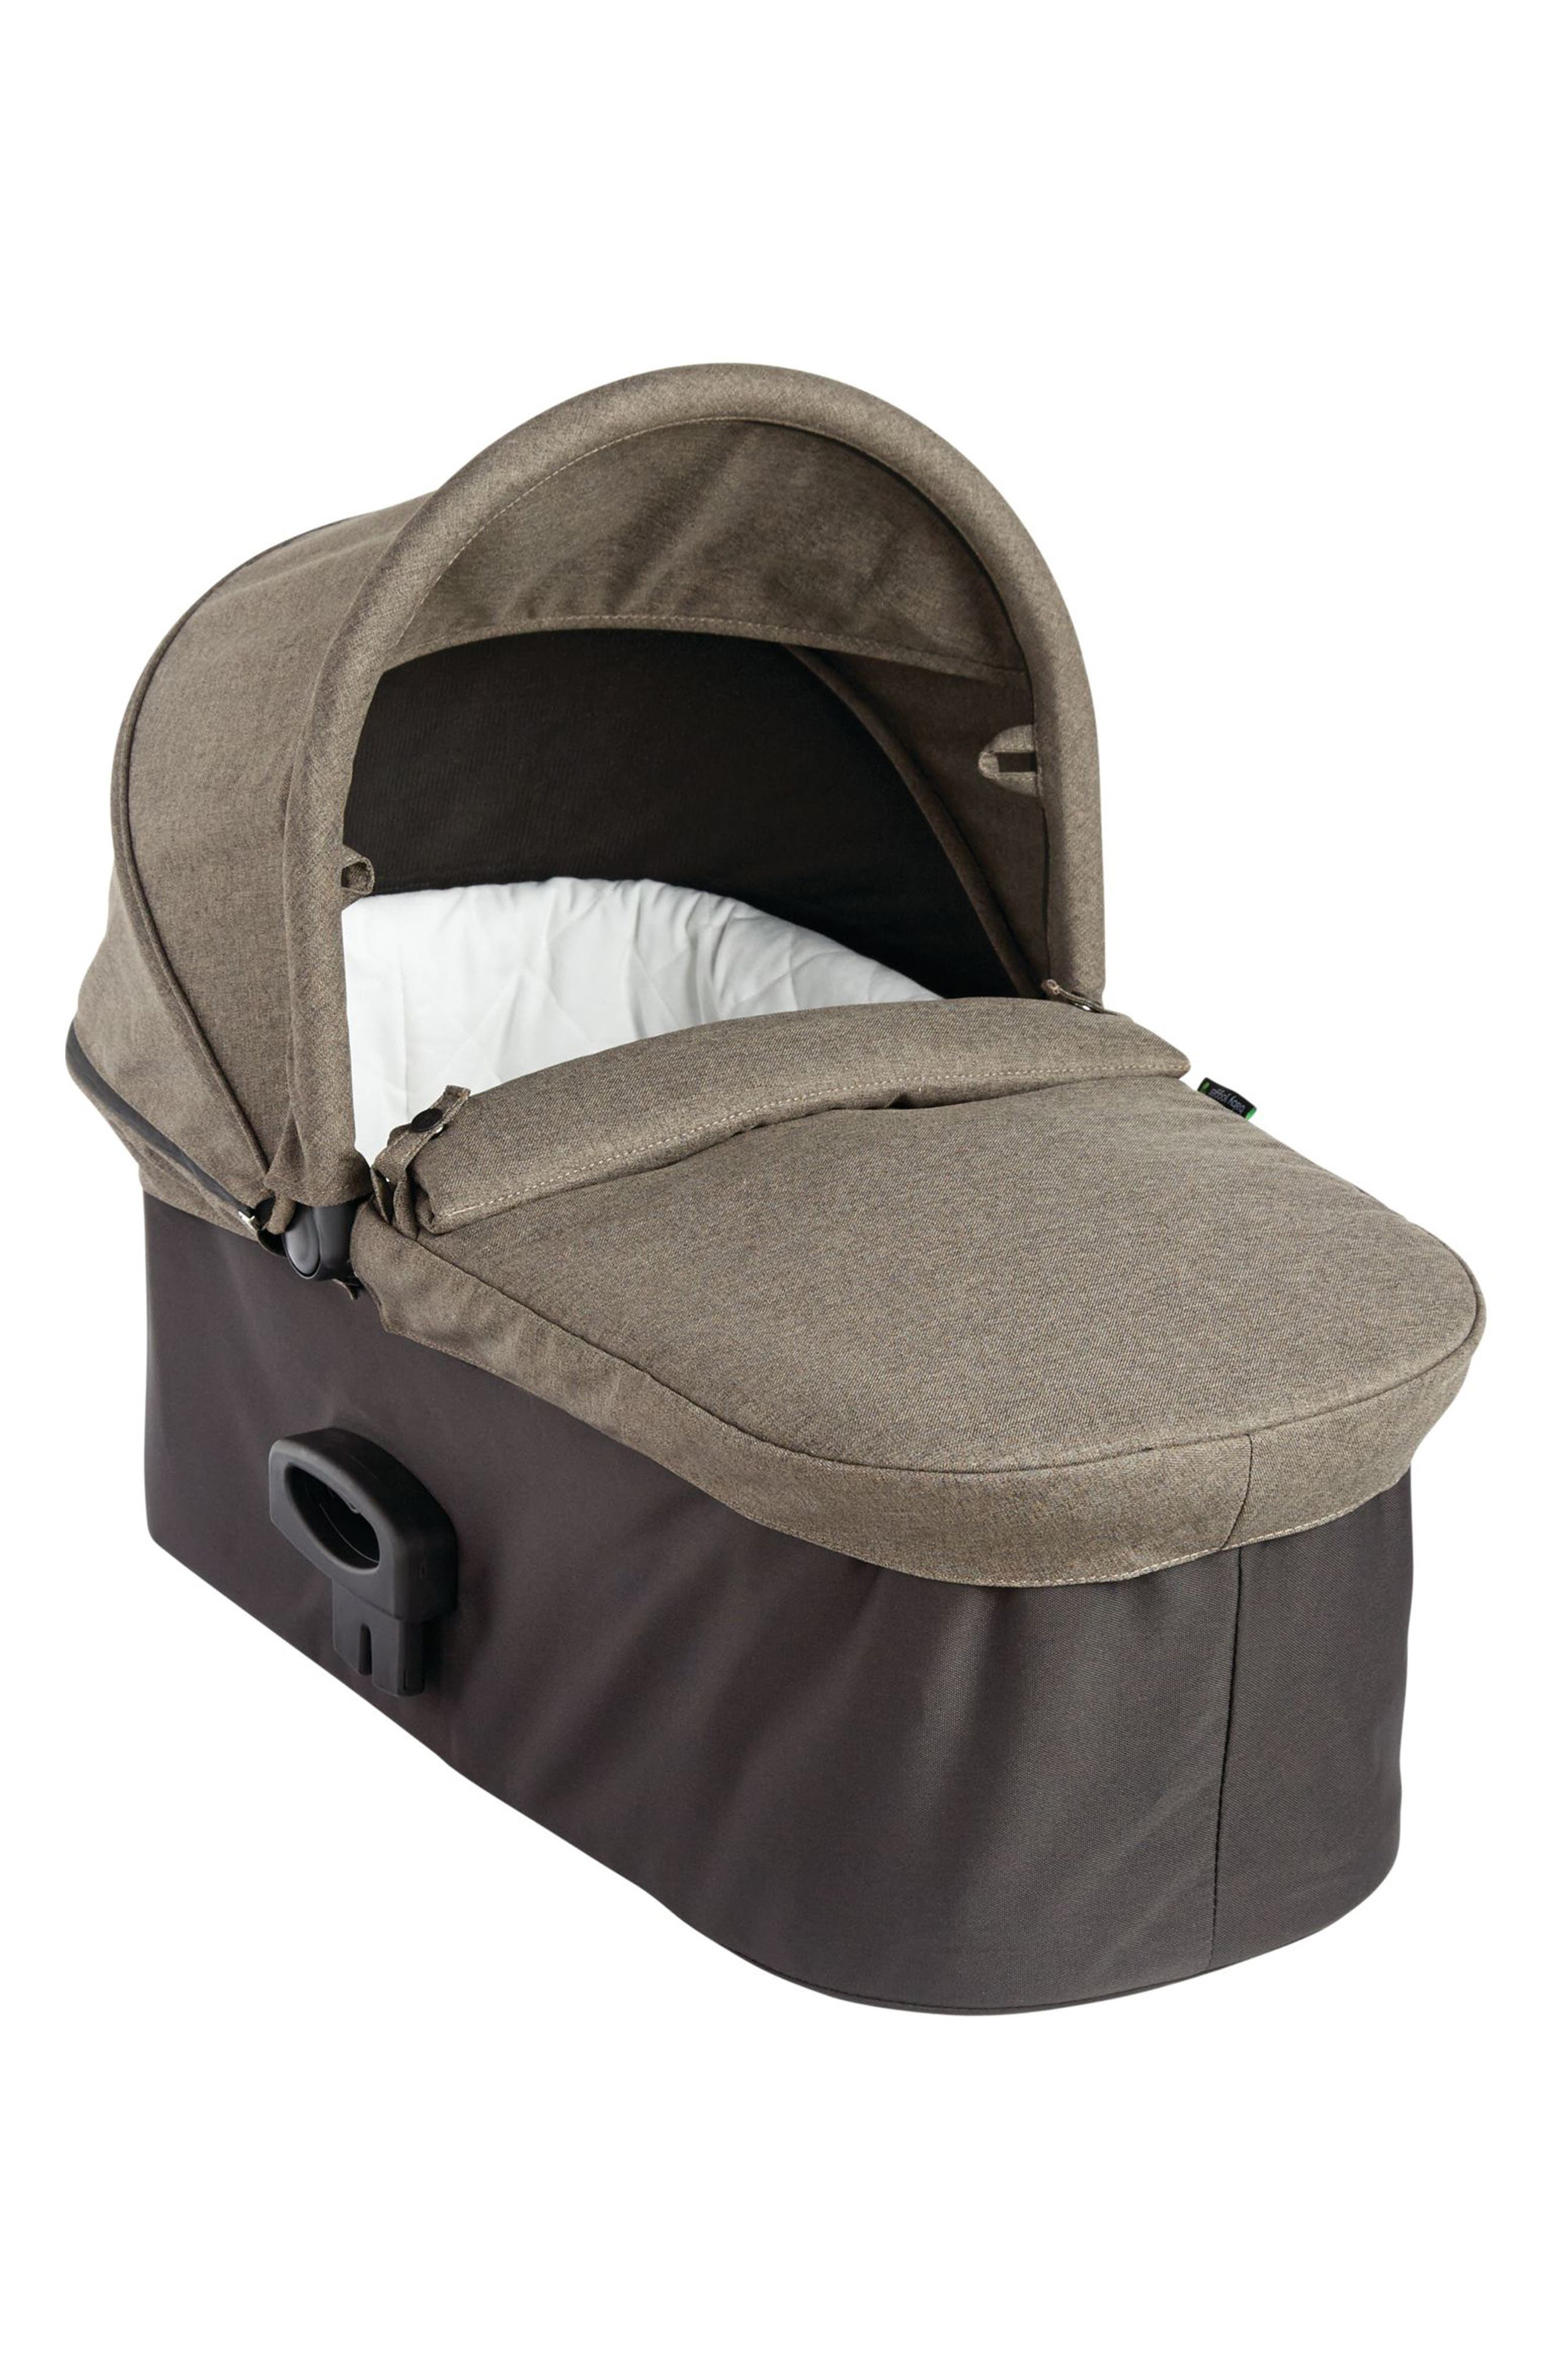 BABY JOGGER,                             Deluxe Pram,                             Main thumbnail 1, color,                             TAUPE